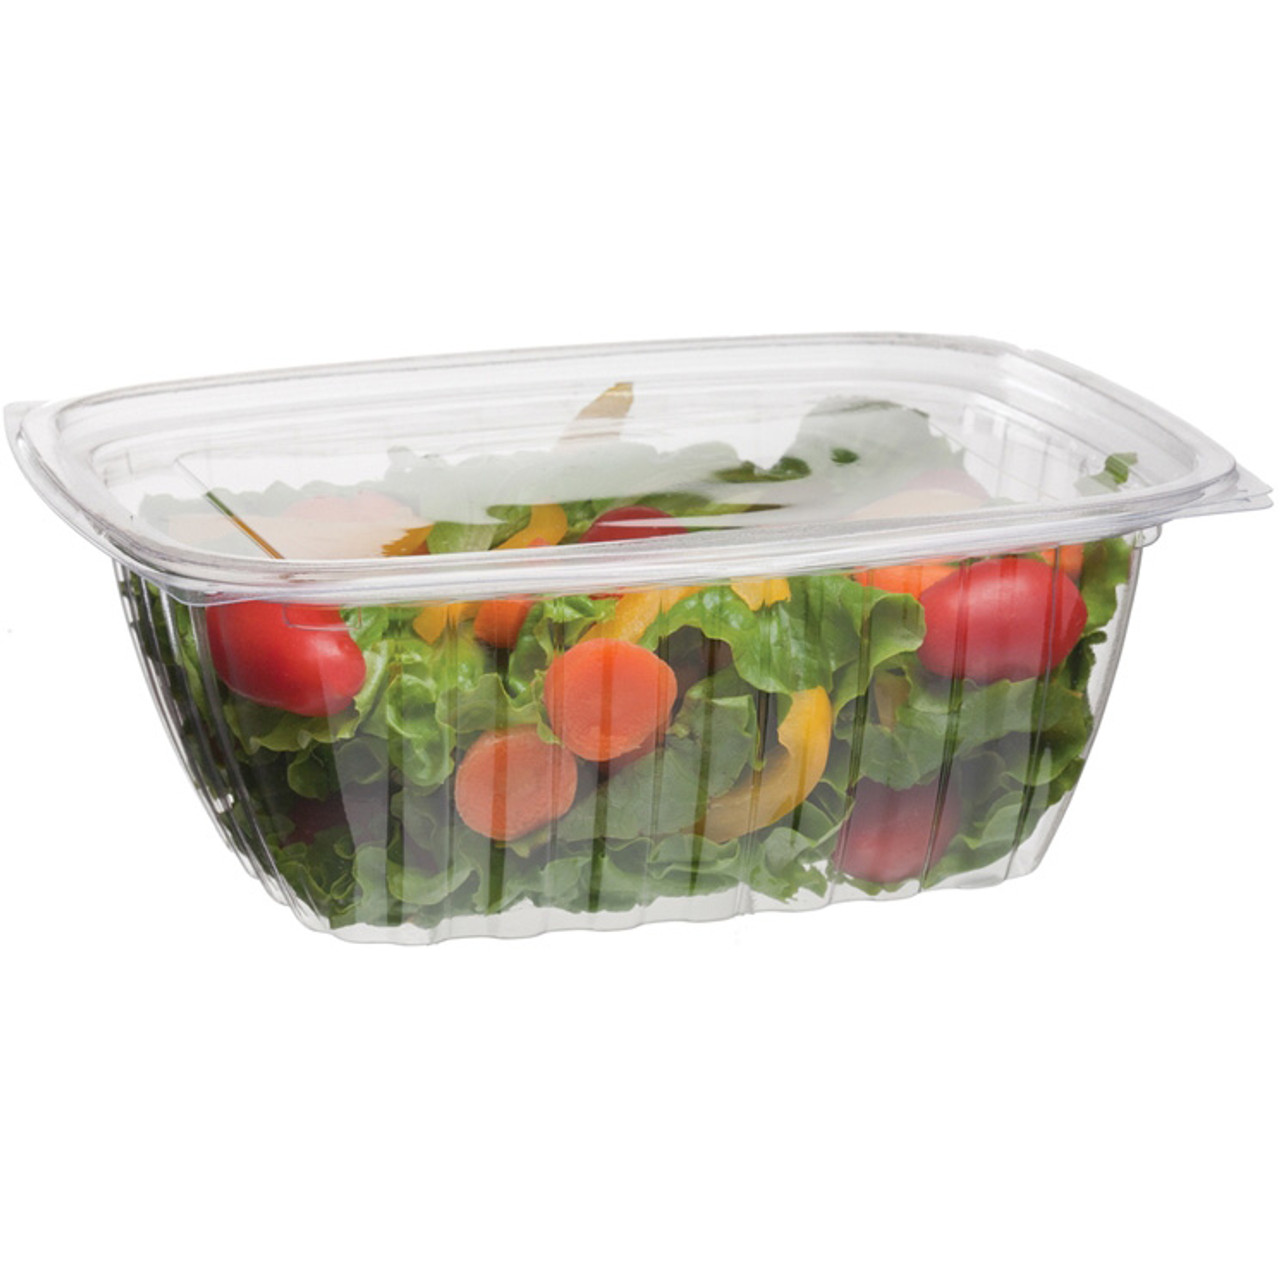 32oz Deli container with flat lid